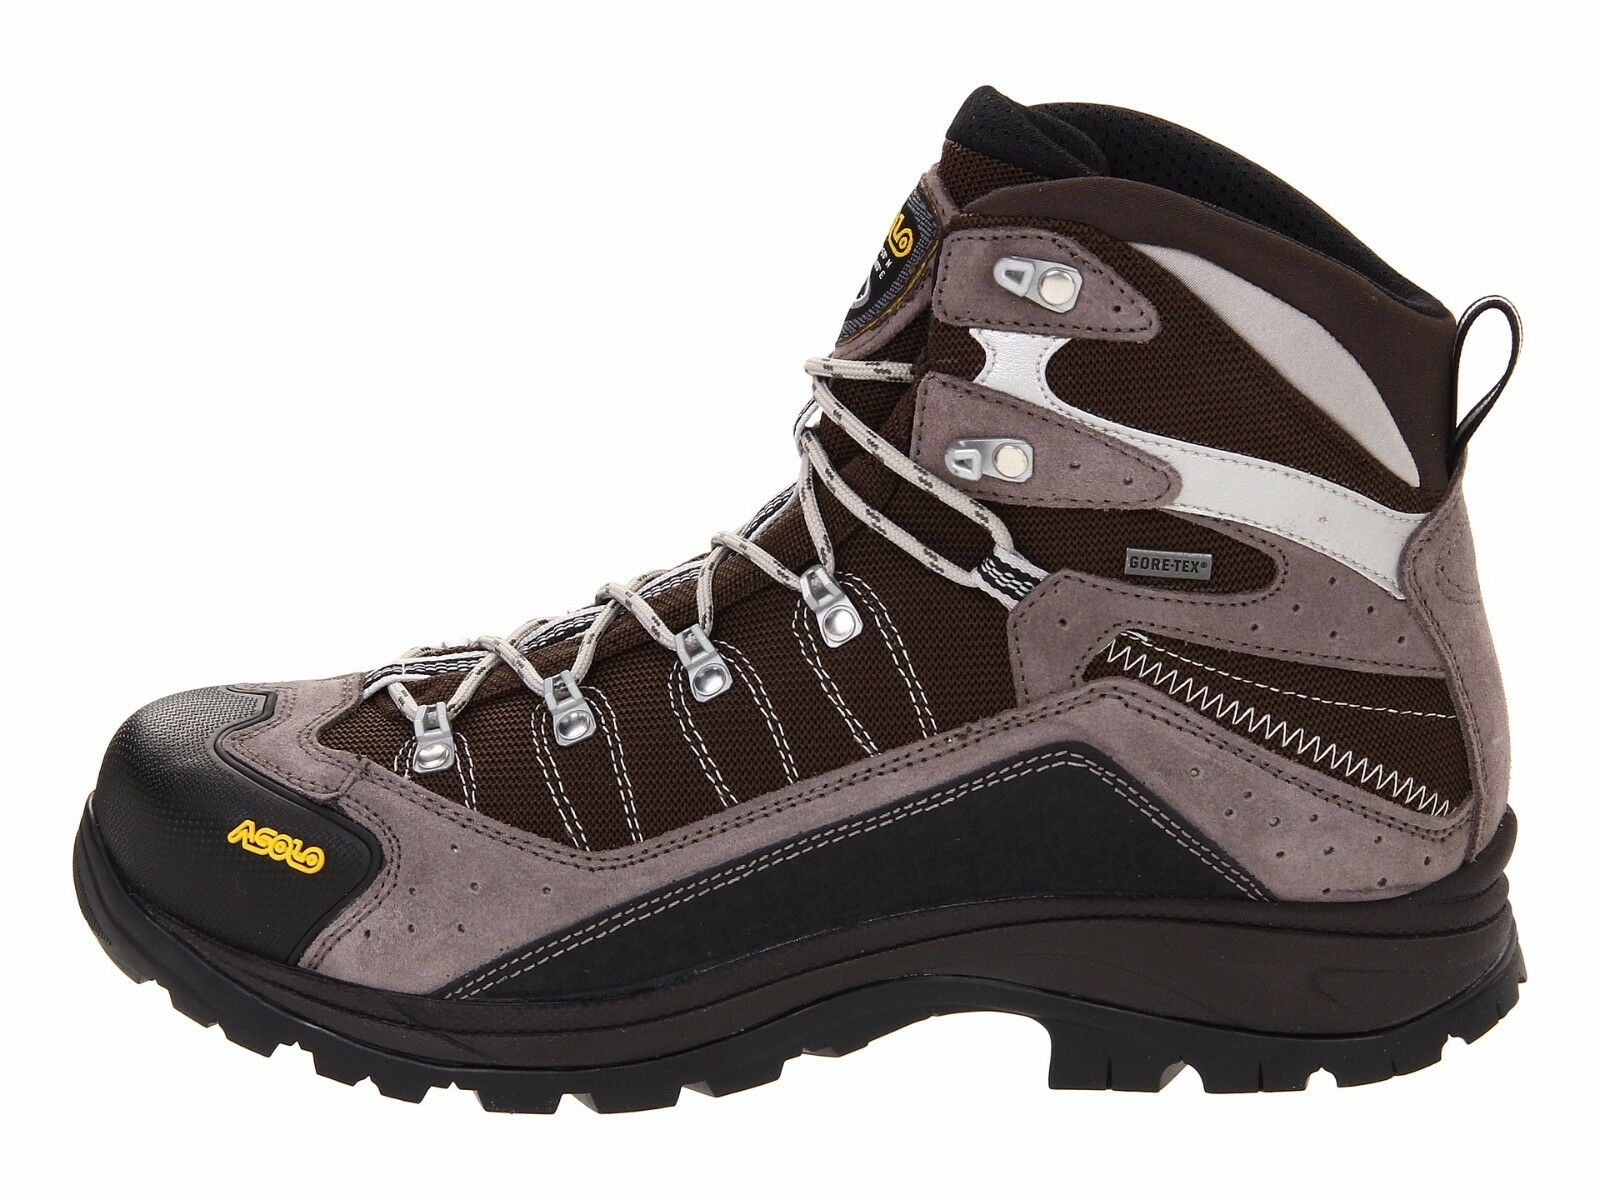 Asolo Drifter Gore-Tex Hiking Boots - - Boots Size 10 2593a3